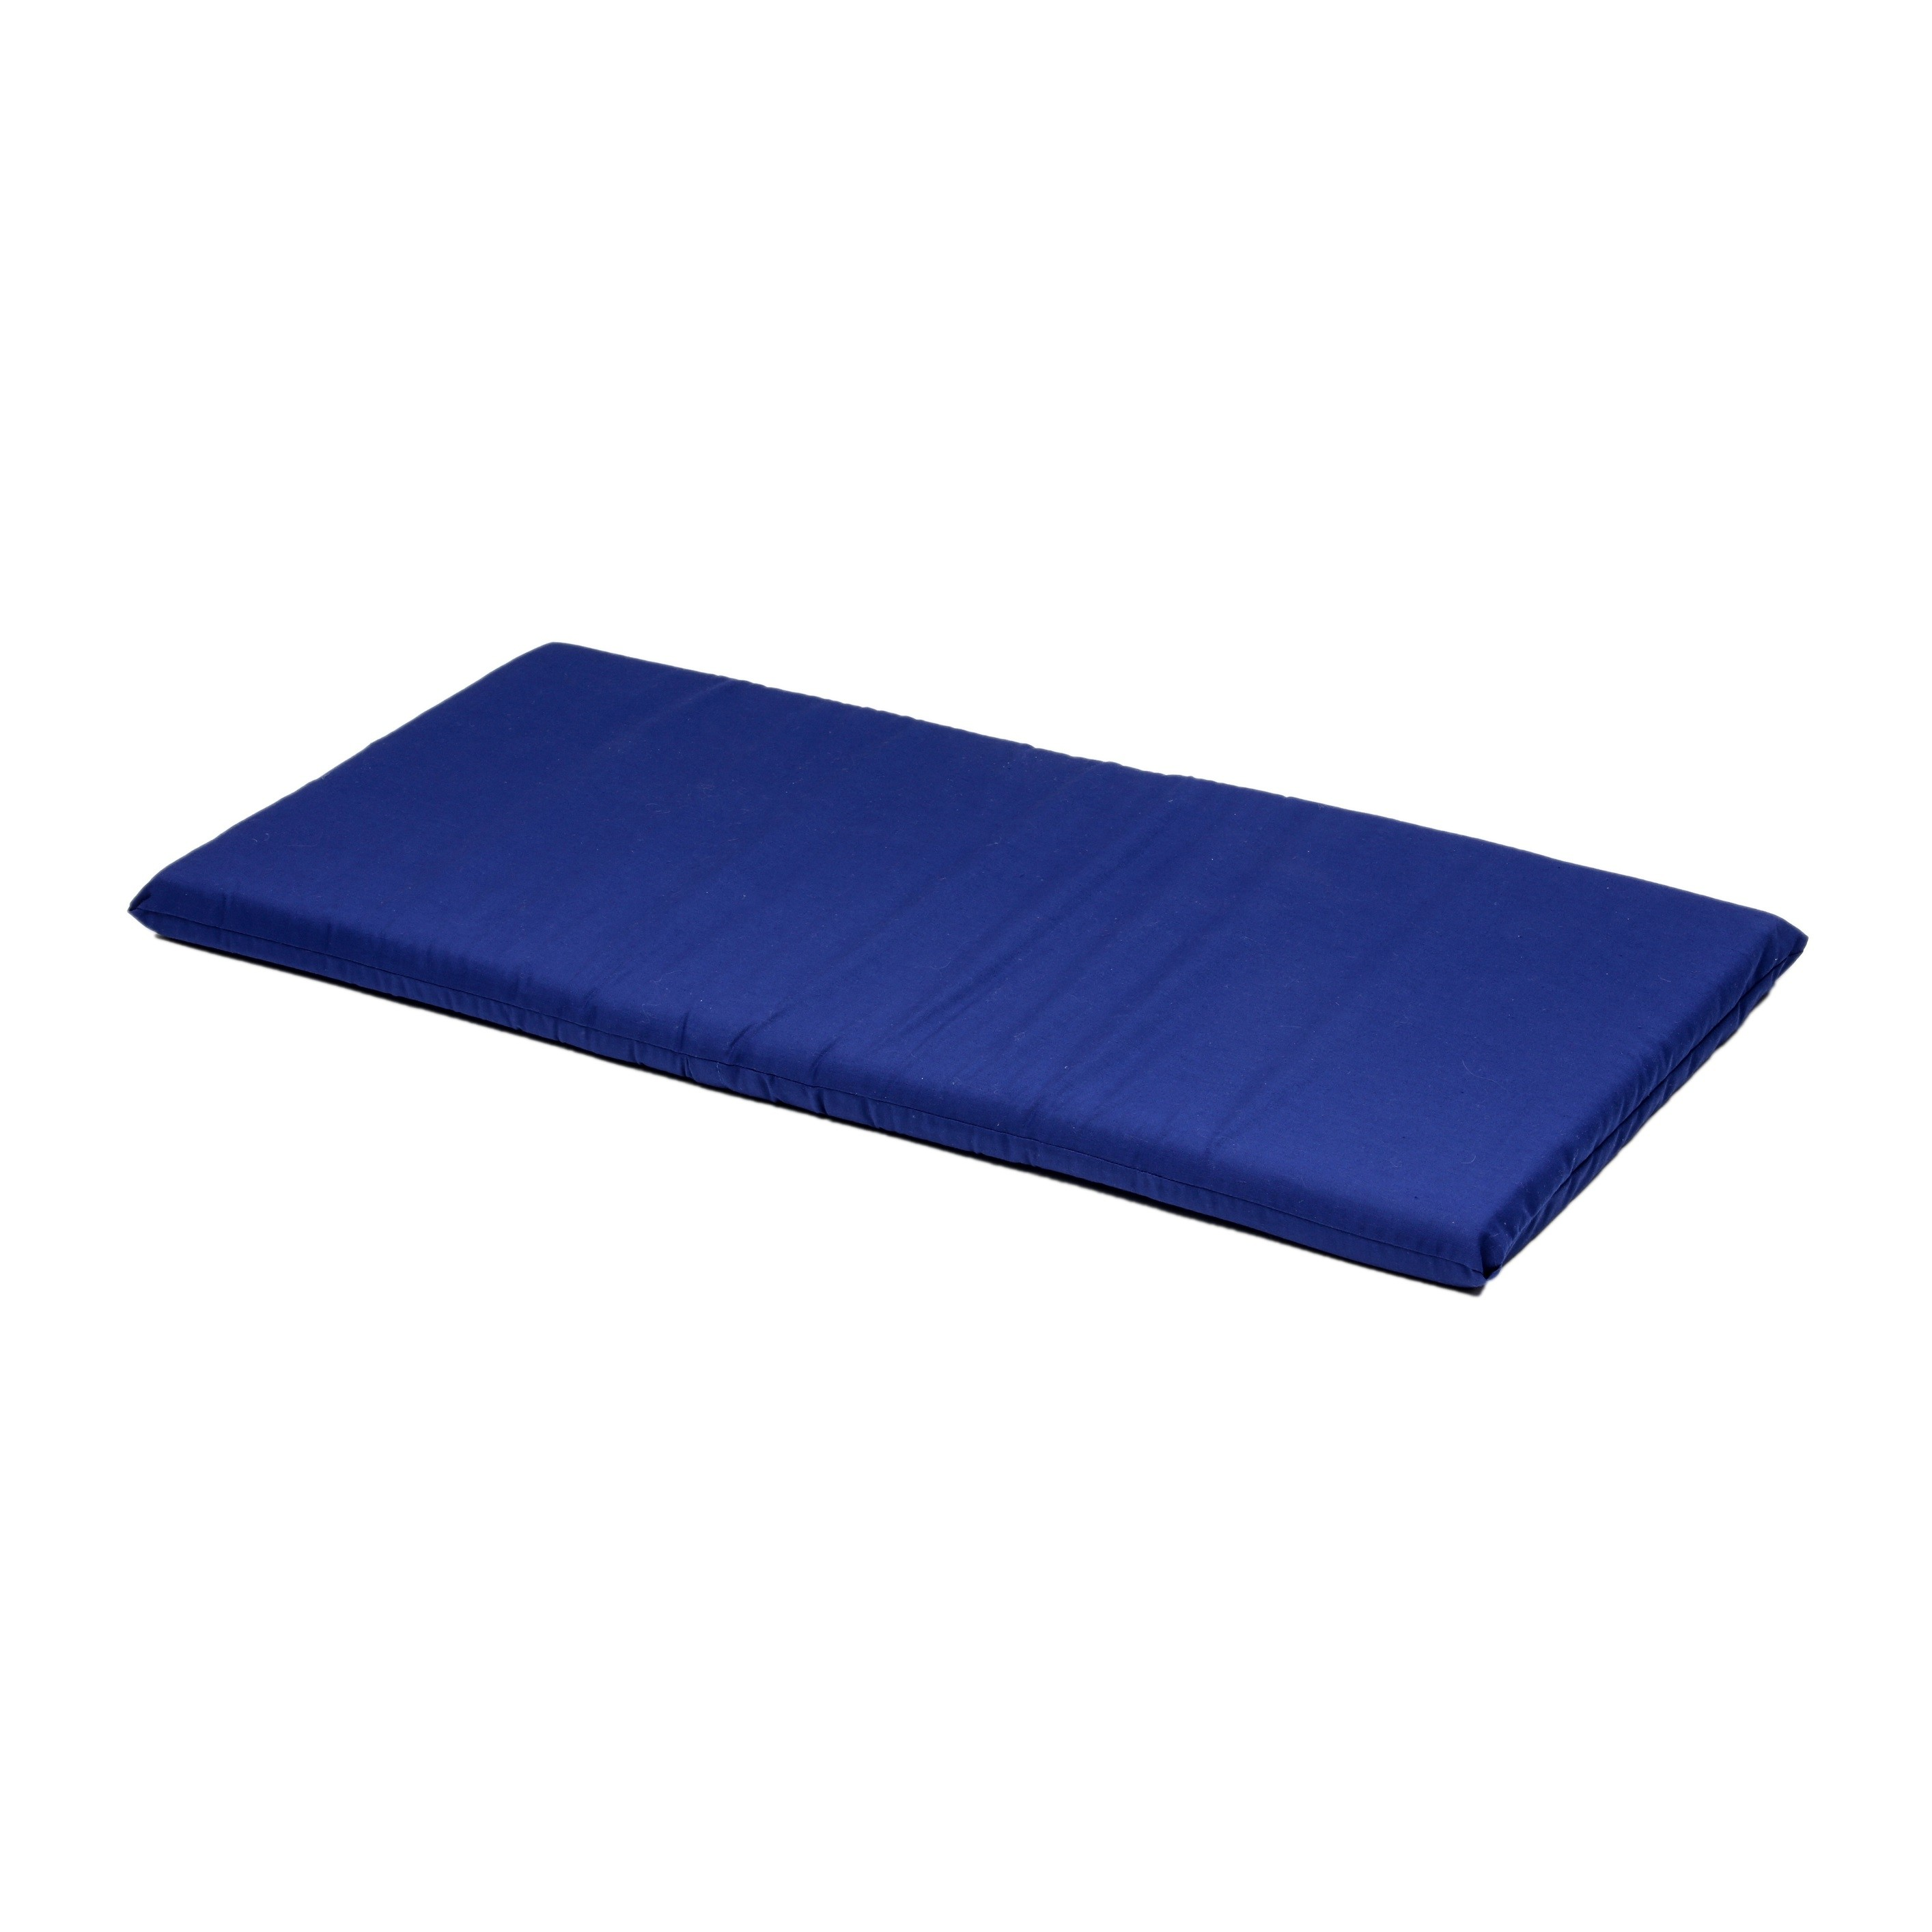 06.Large Rectangle Support Pillow